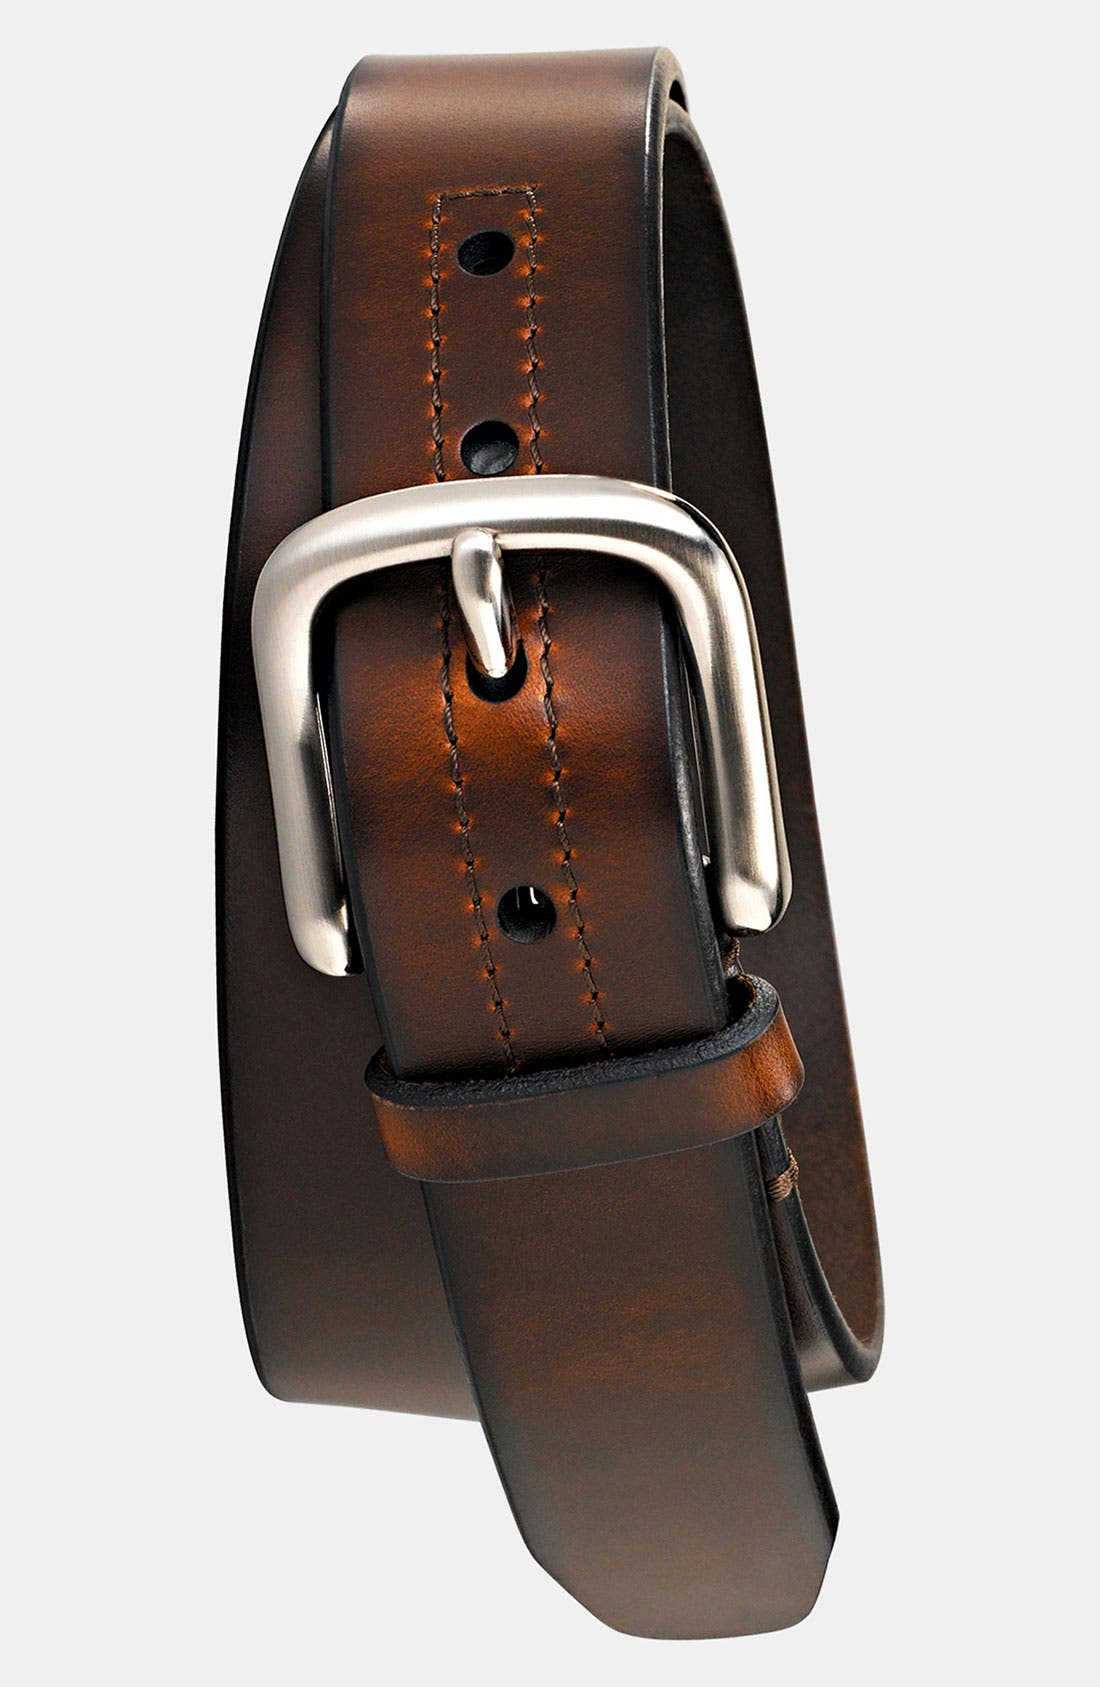 Main Image - Fossil 'Hanover' Leather Belt